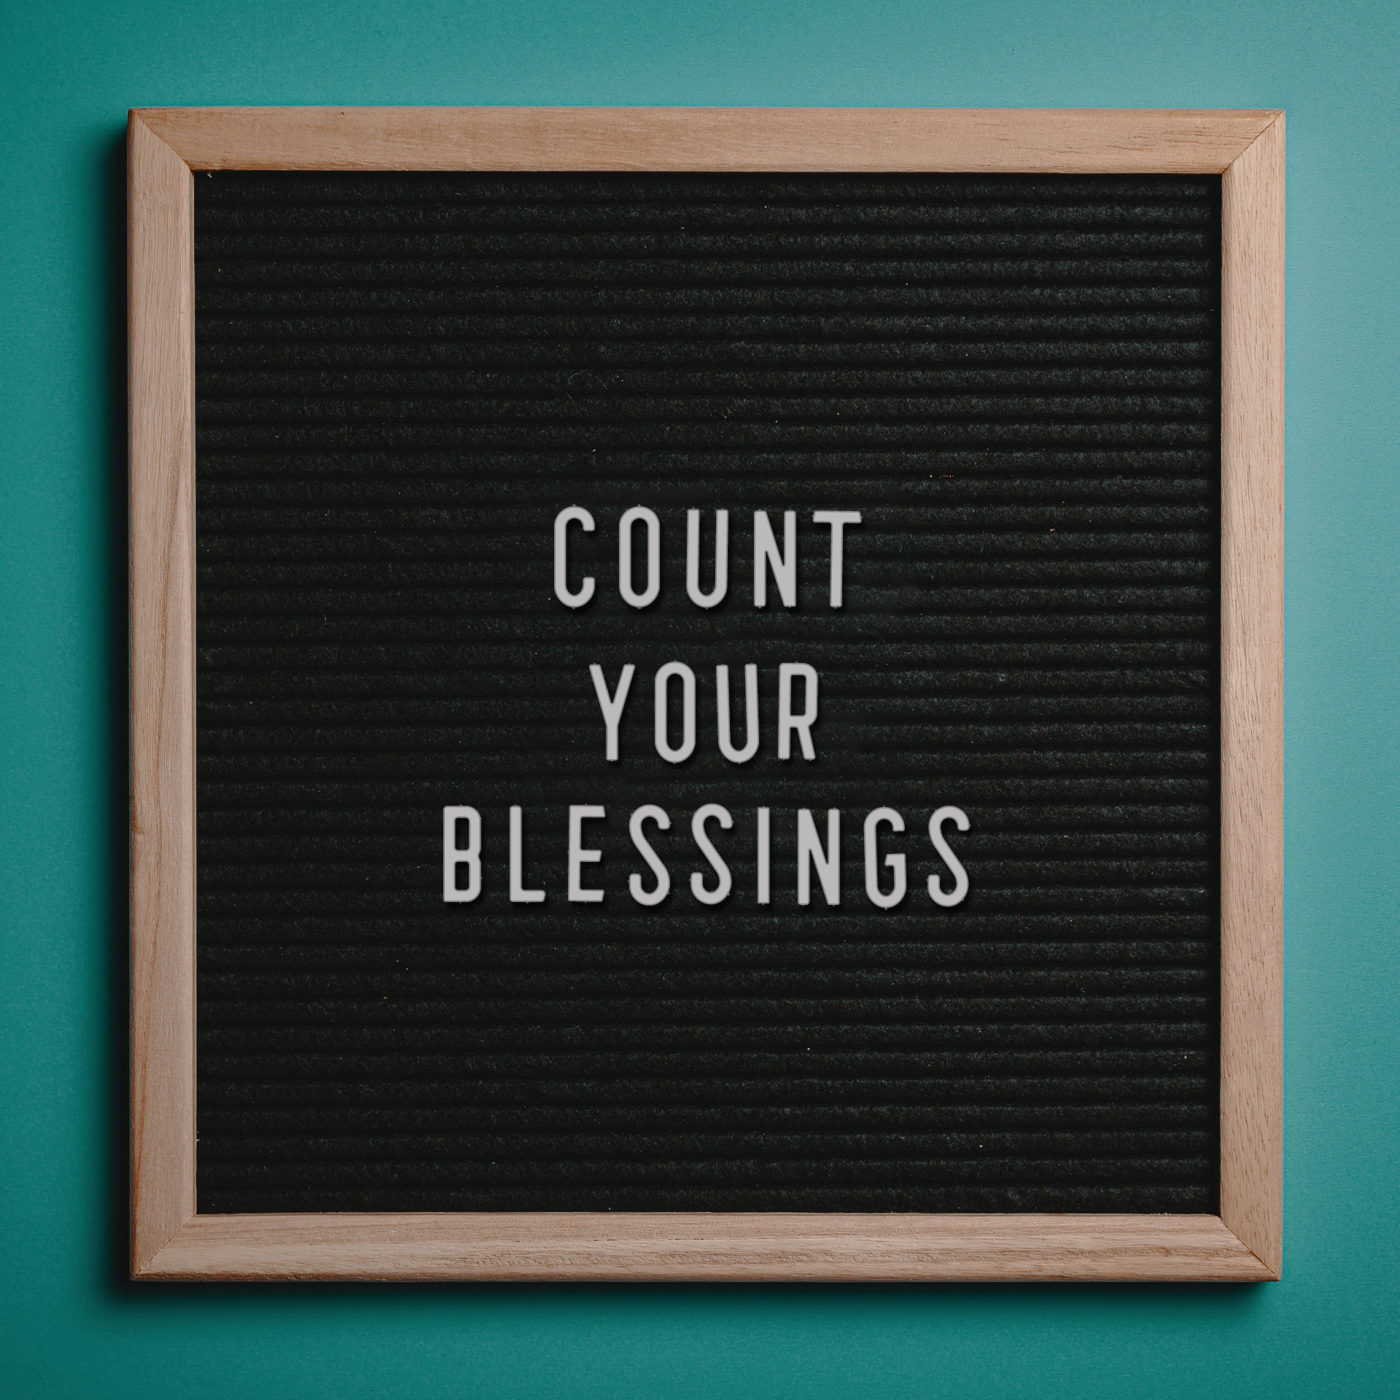 Count Your Blessings - Mark Batterson - Devotional - Thanksgiving